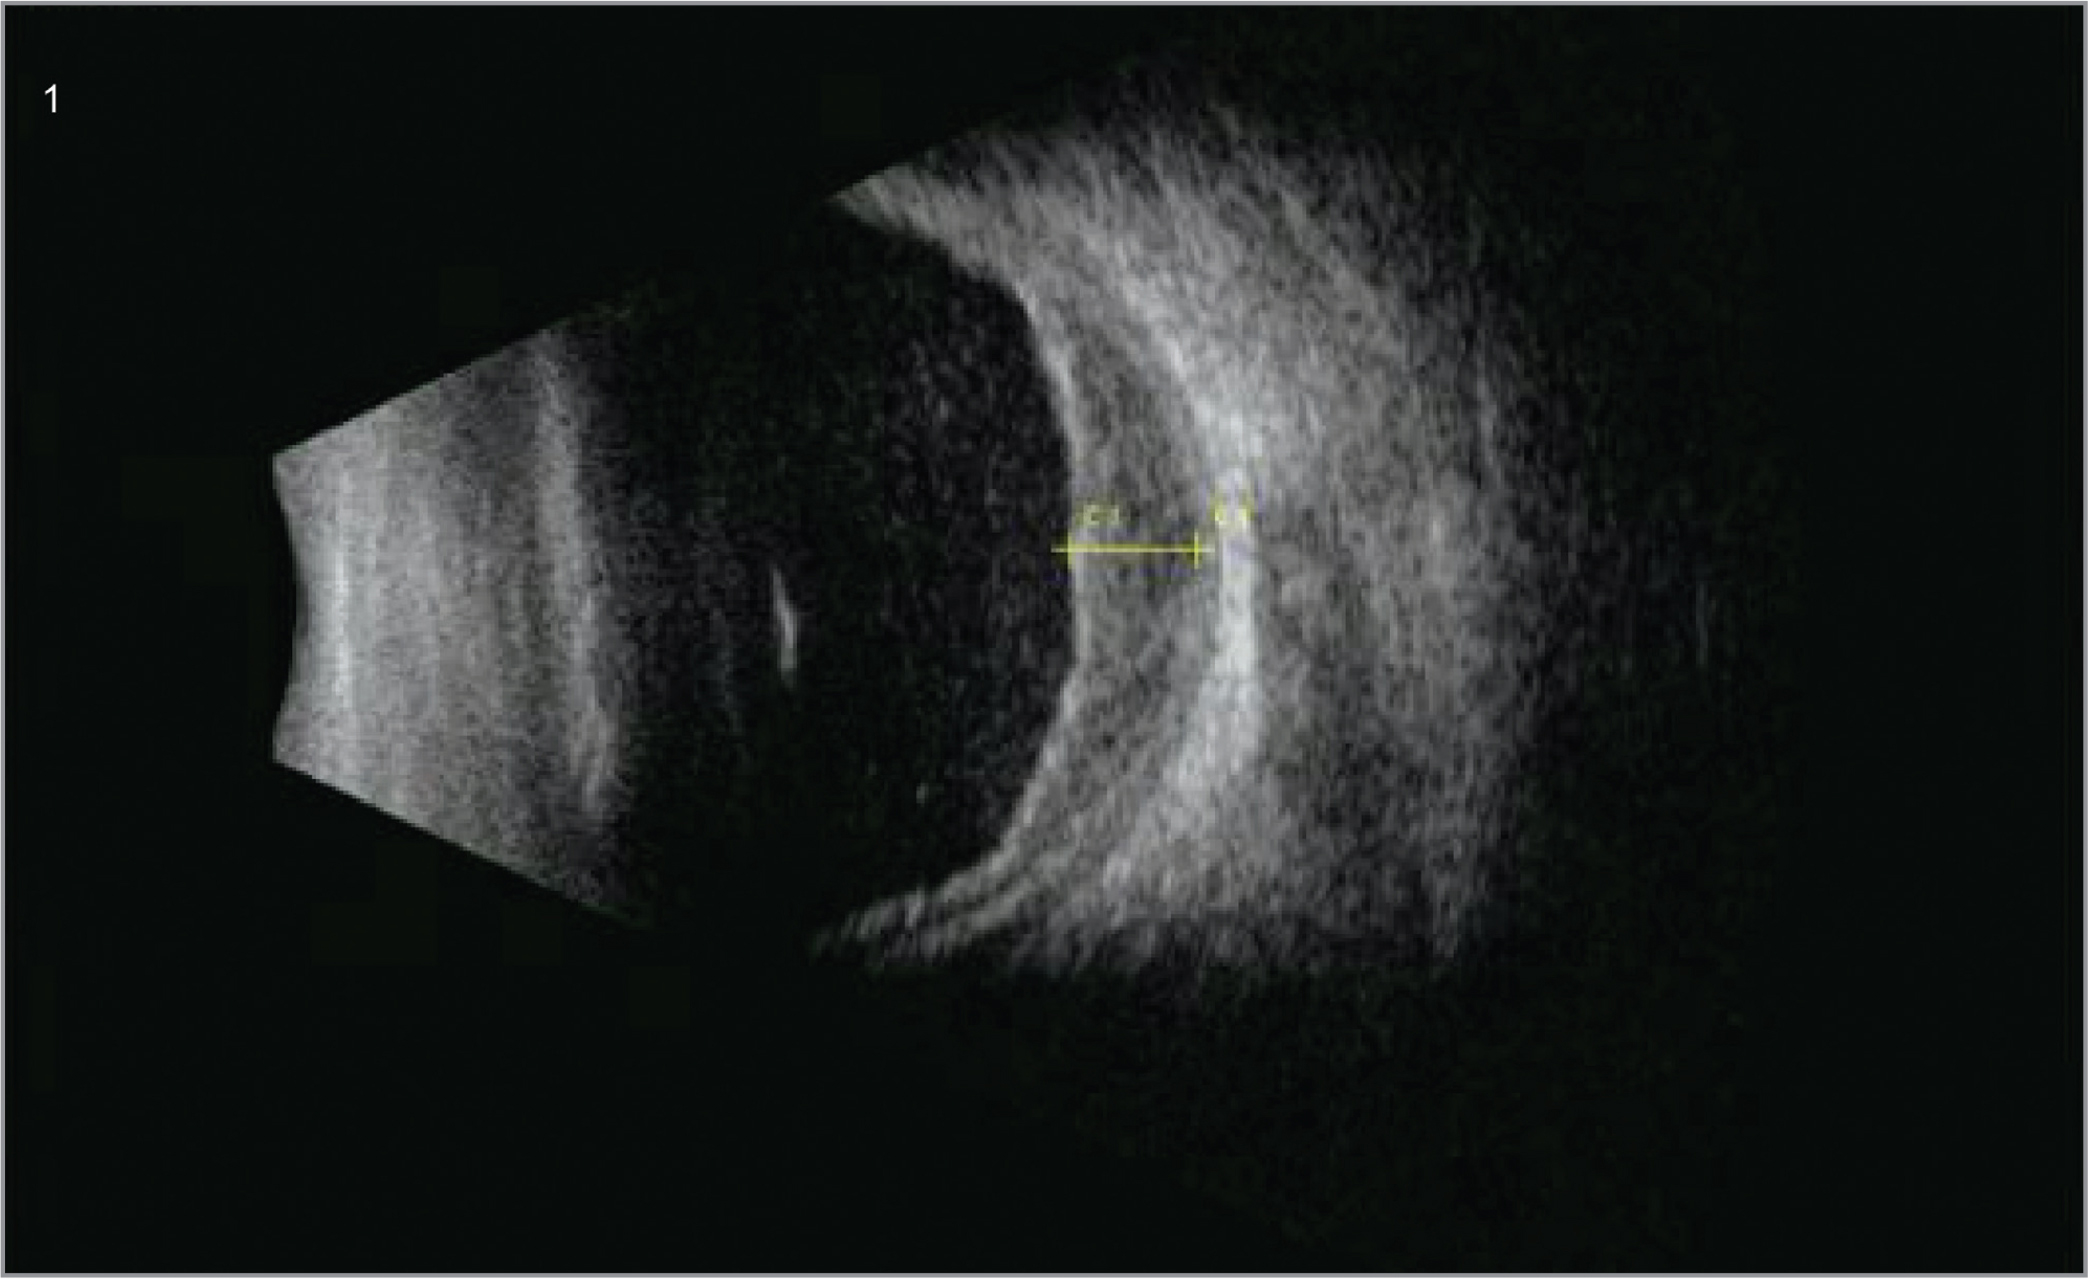 B-scan ultrasonography of patient from Case 1 on postoperative day 1 disclosed non-appositional hemorrhagic choroidal detachments with vitreous hemorrhage (1).